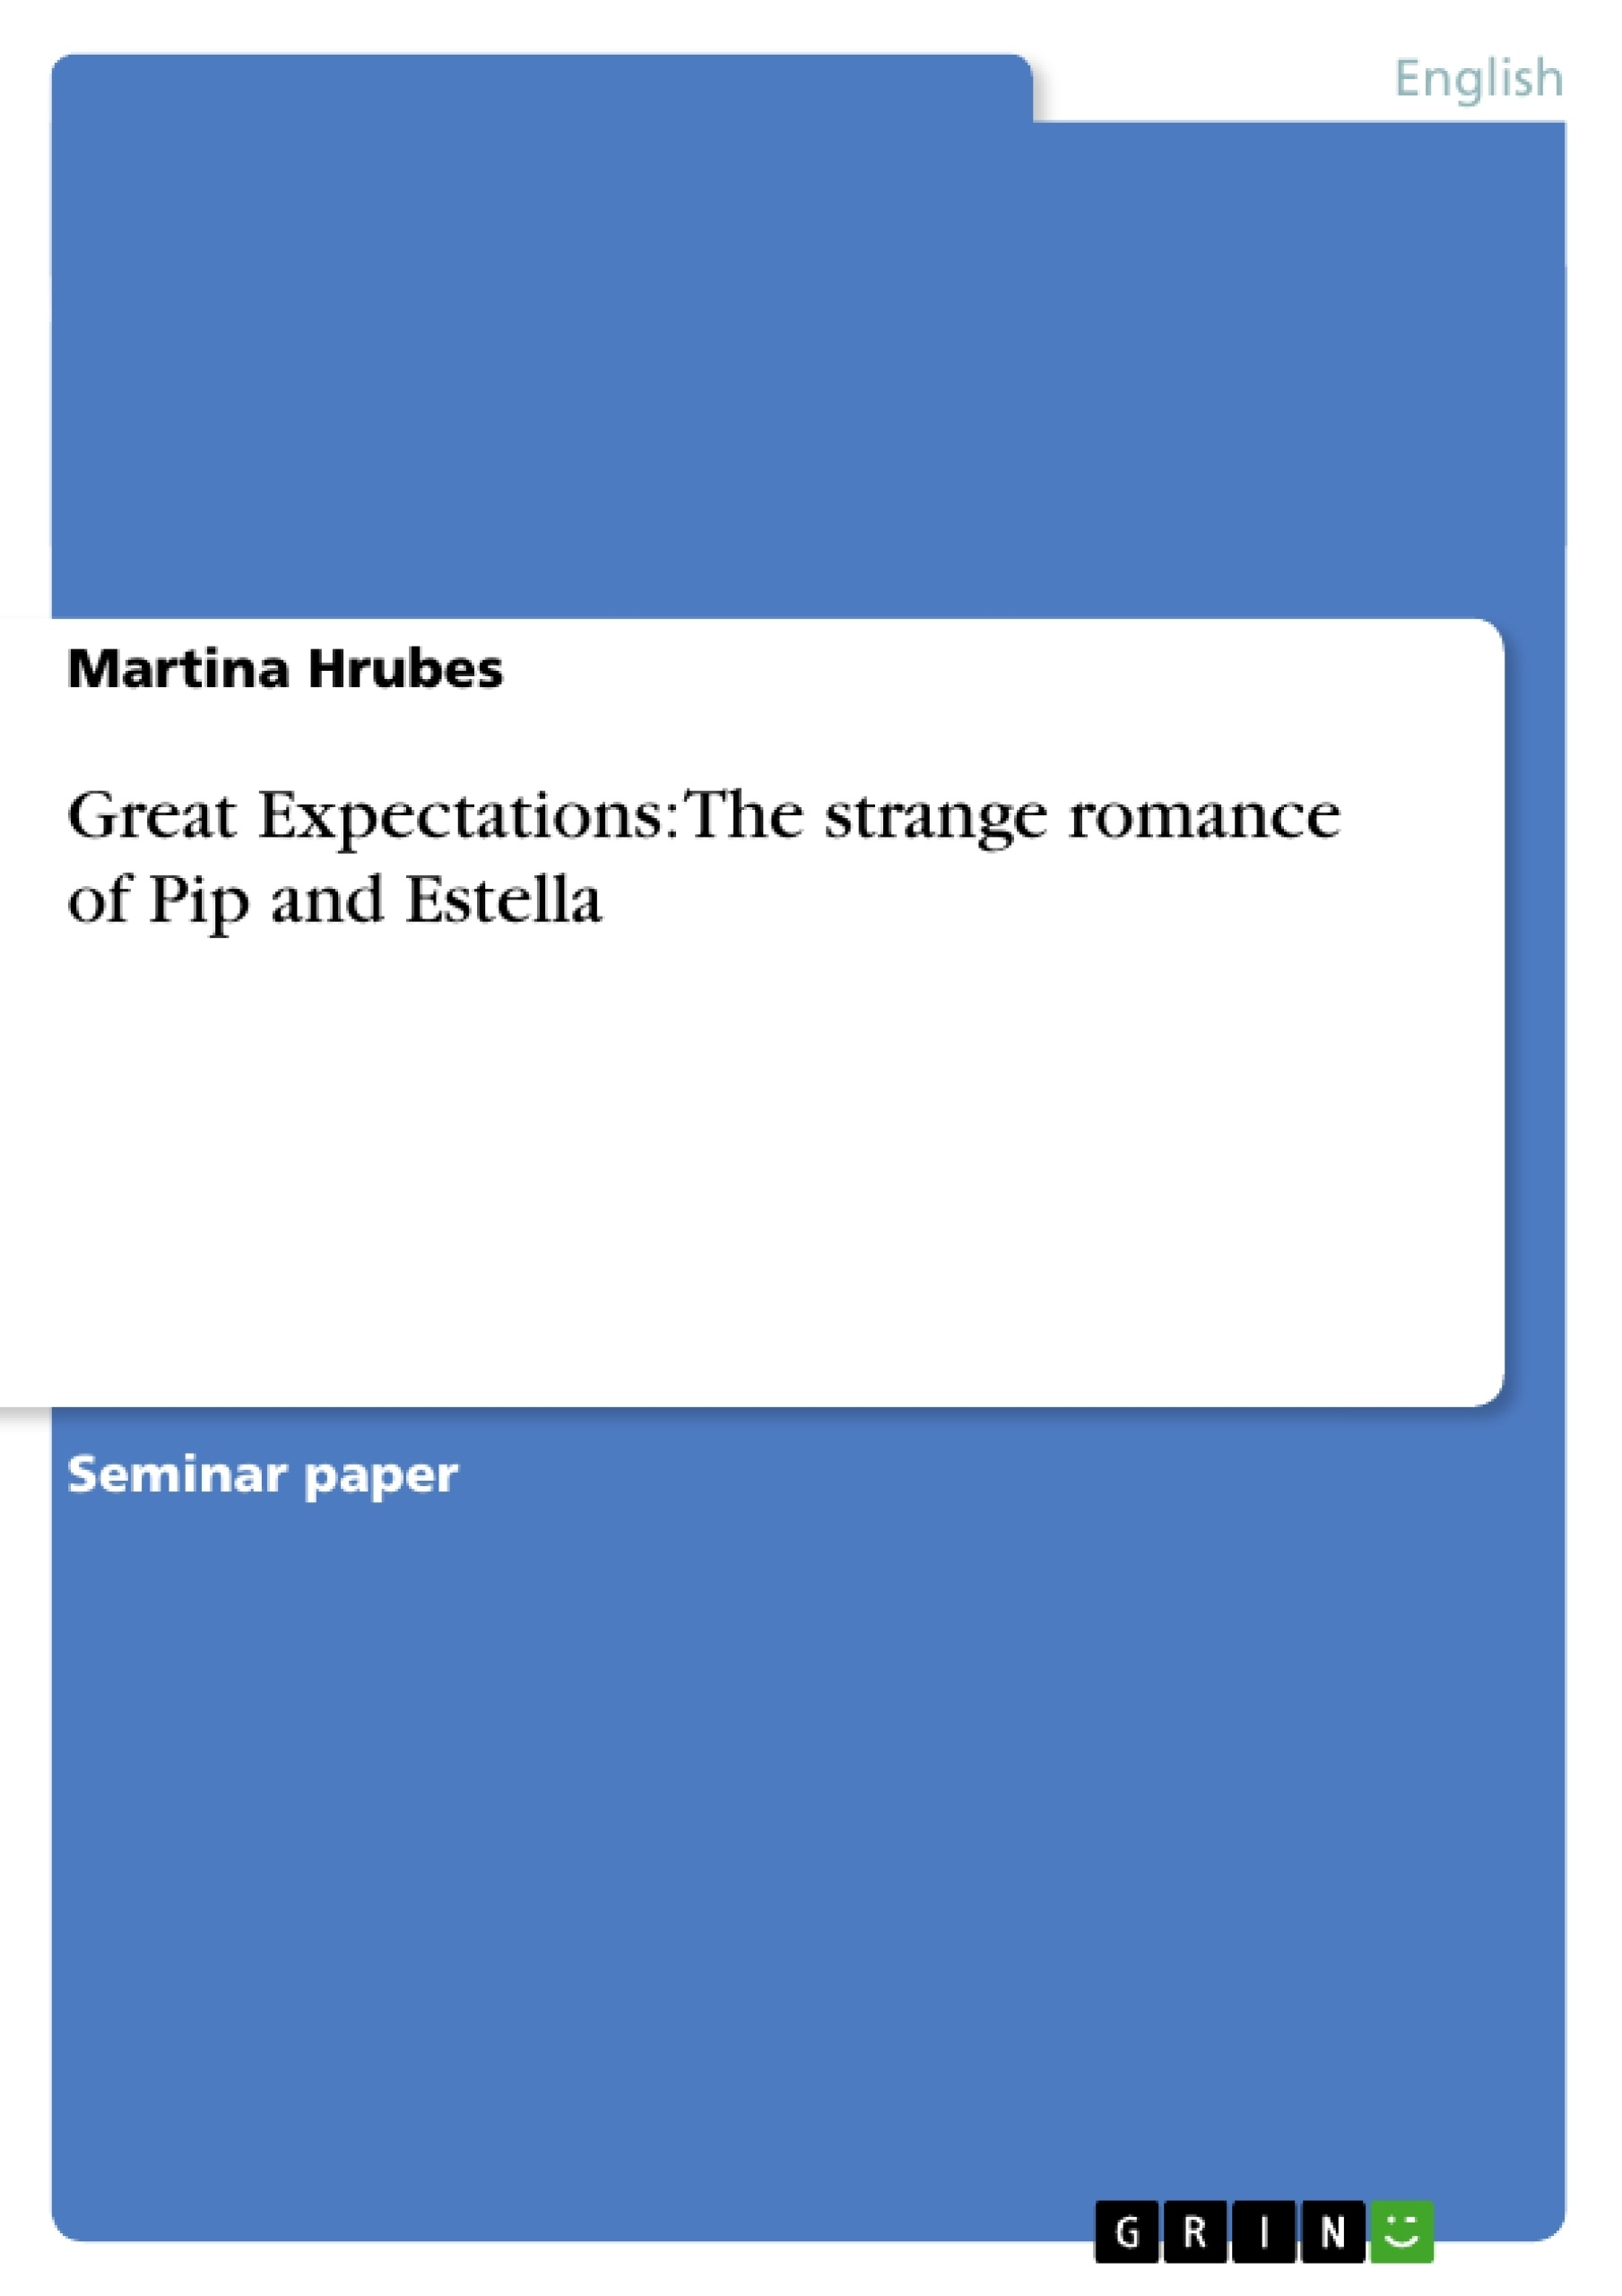 essay on estella-pip relationship in great expectations